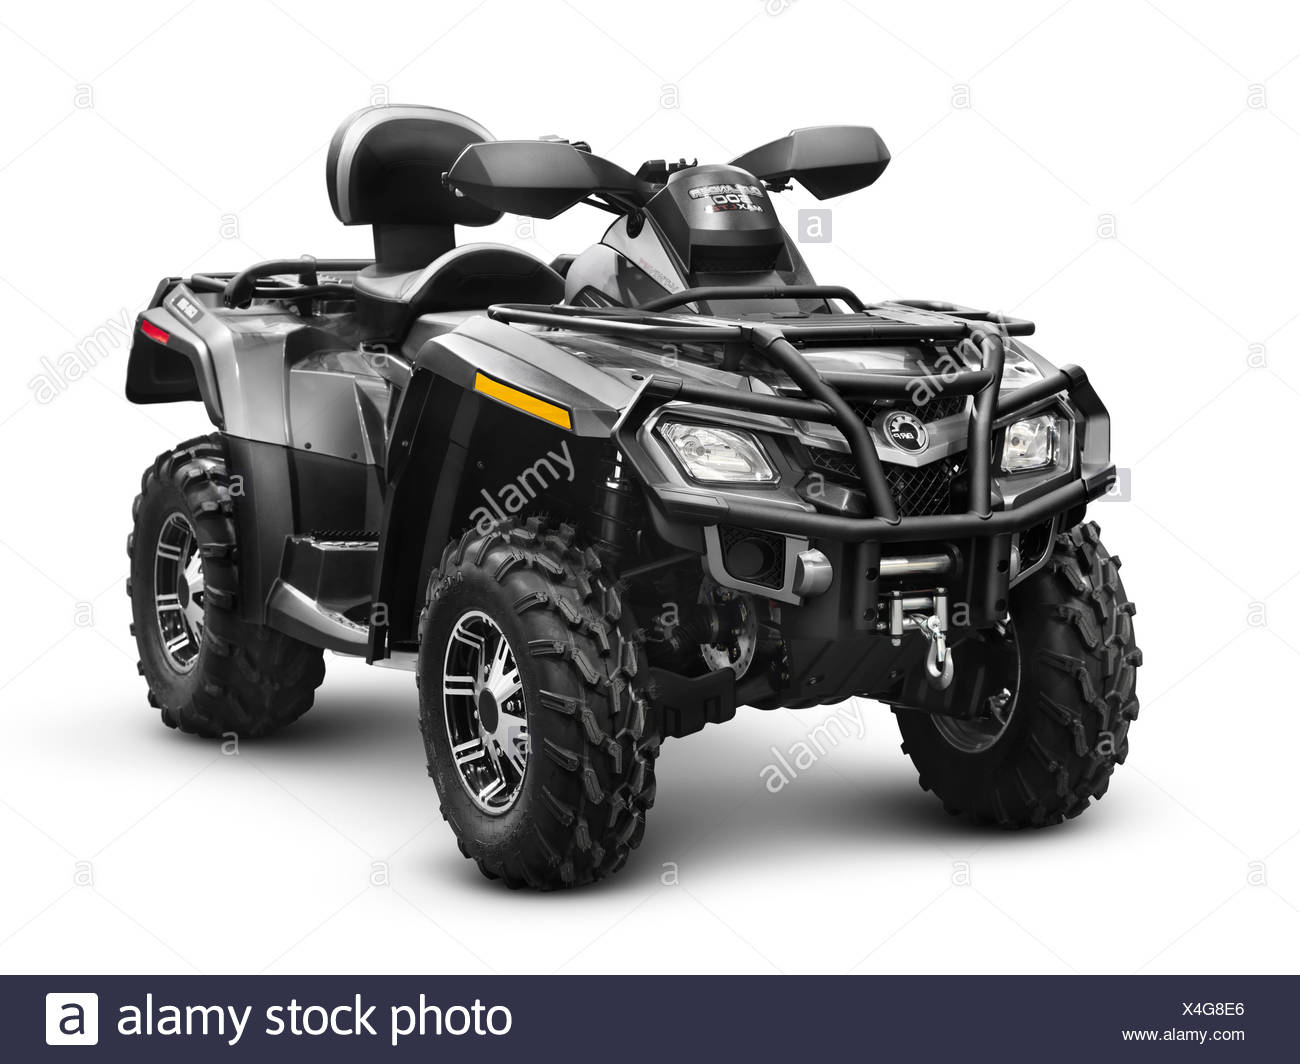 Can-Am BRP Outlander 500 ATV, Bombardier Recreational Products - Stock Image